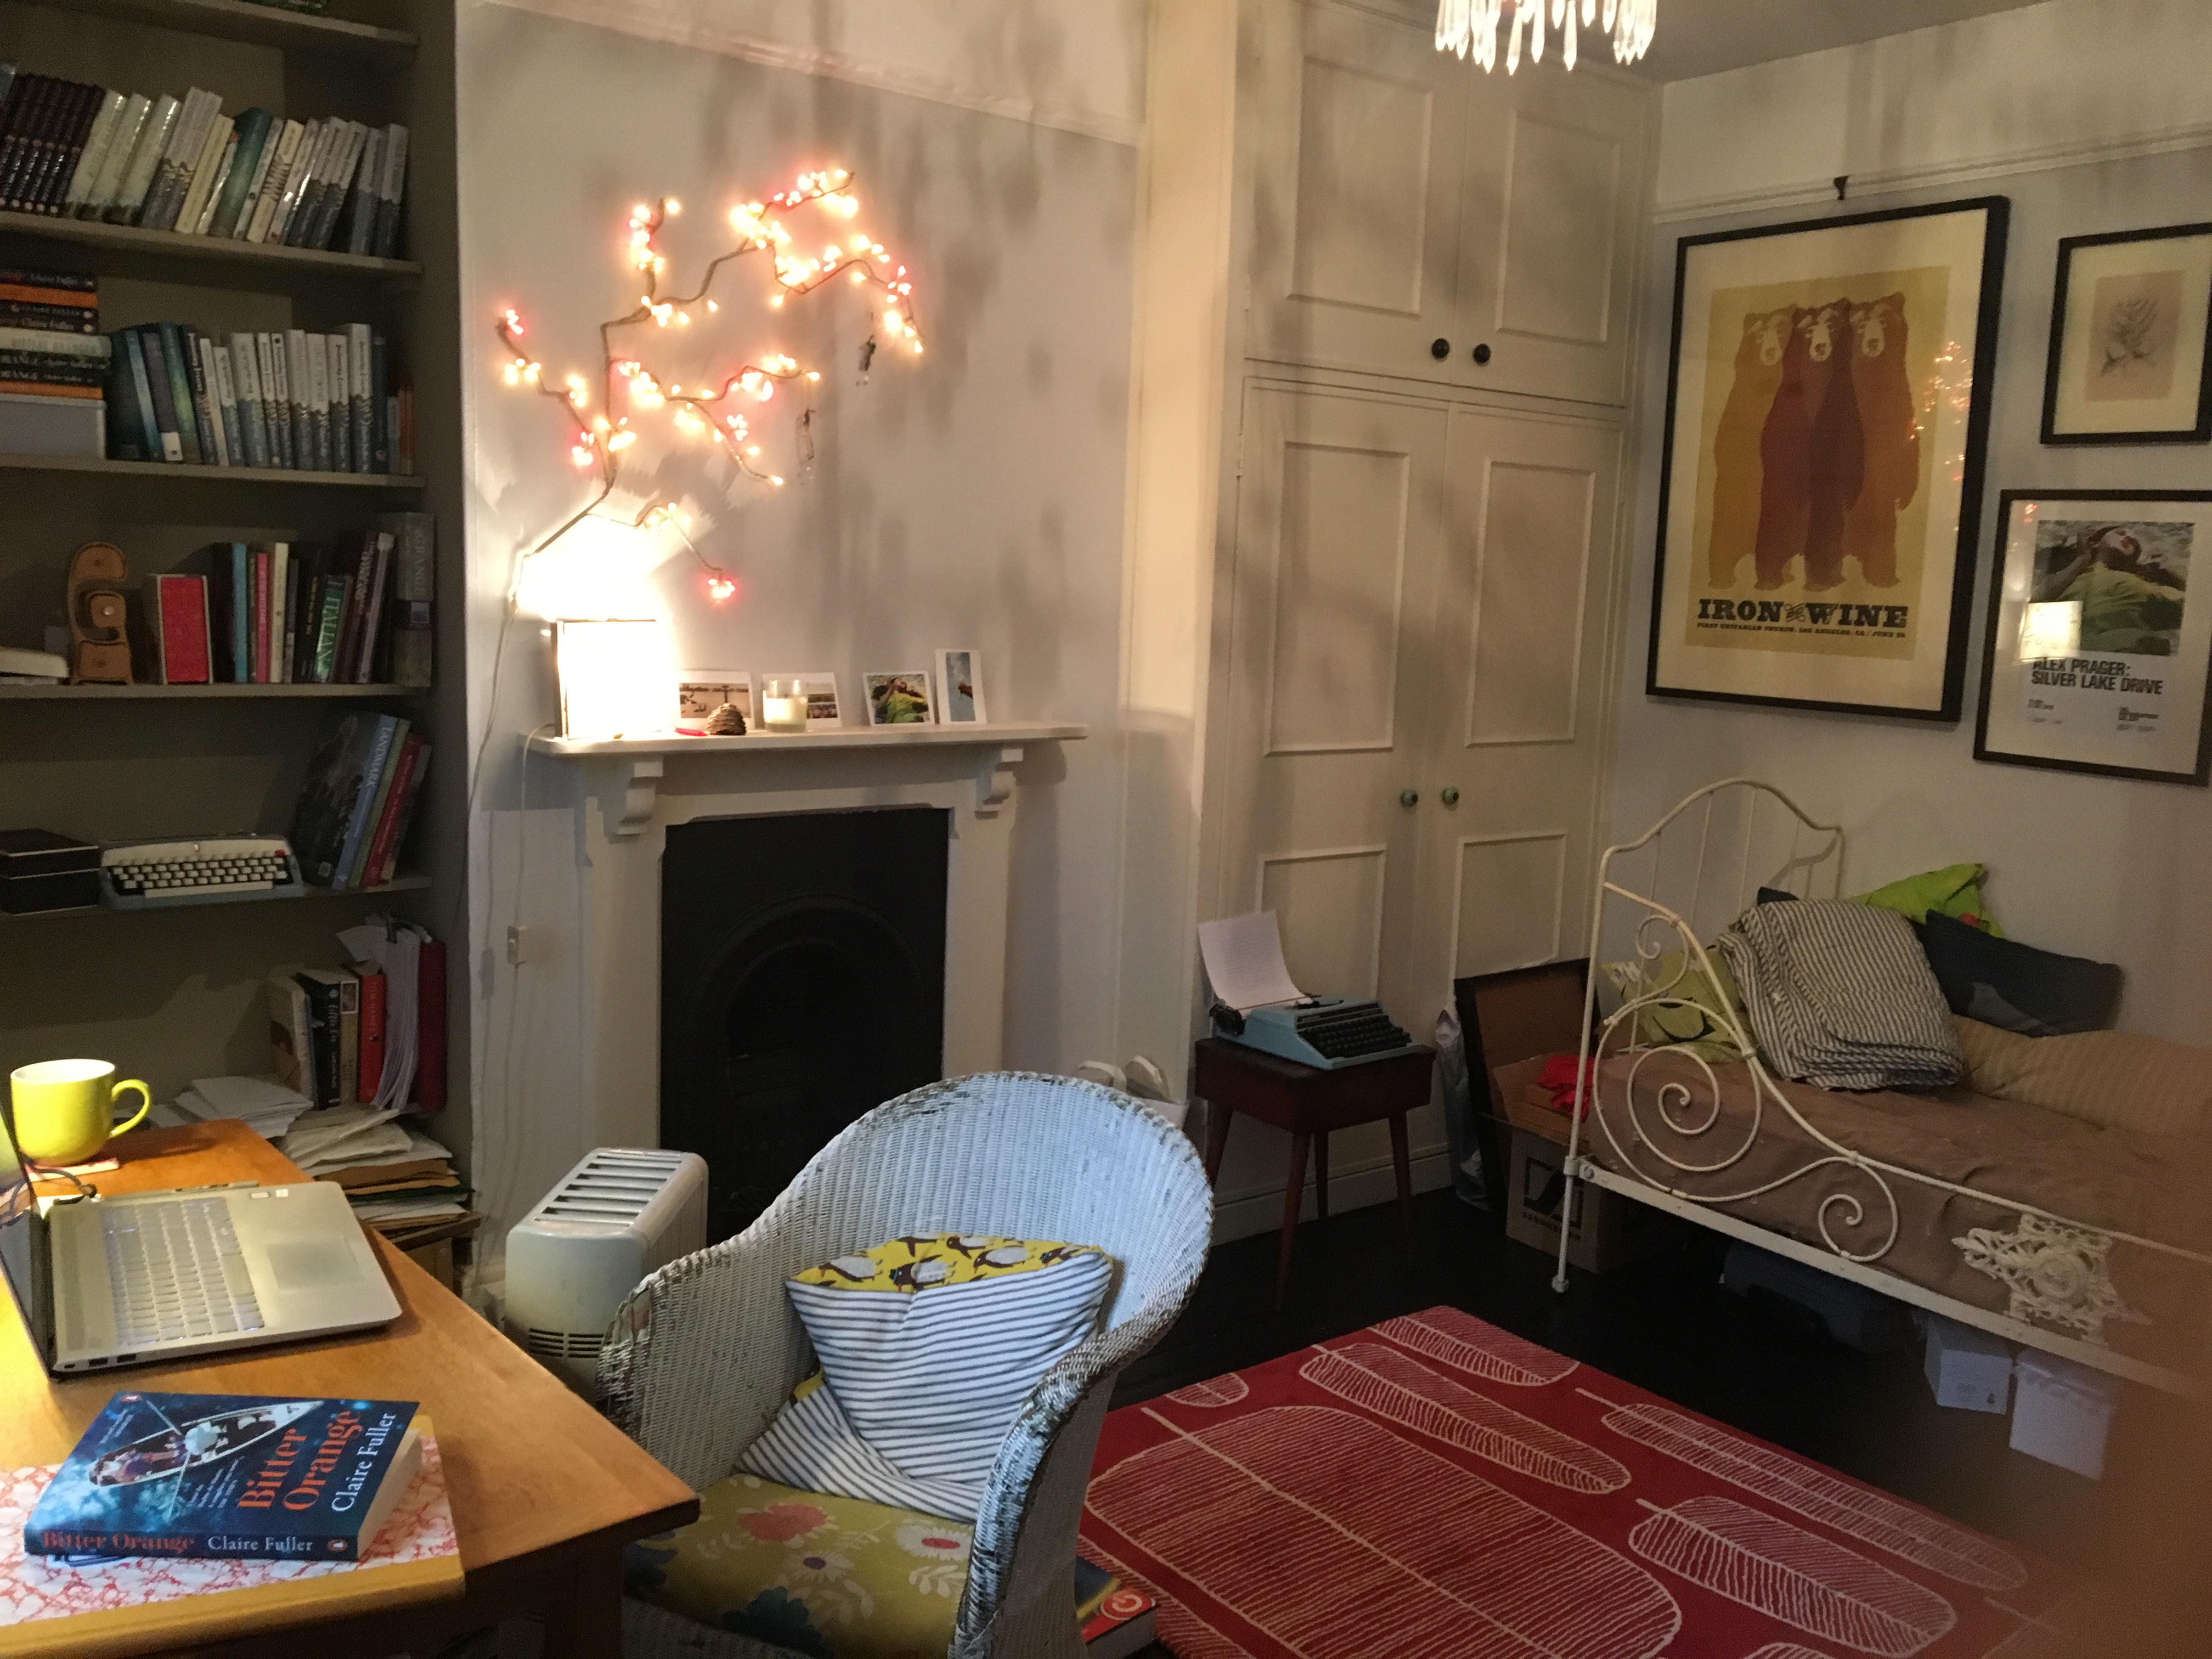 Claire Fuller's Writing Spot